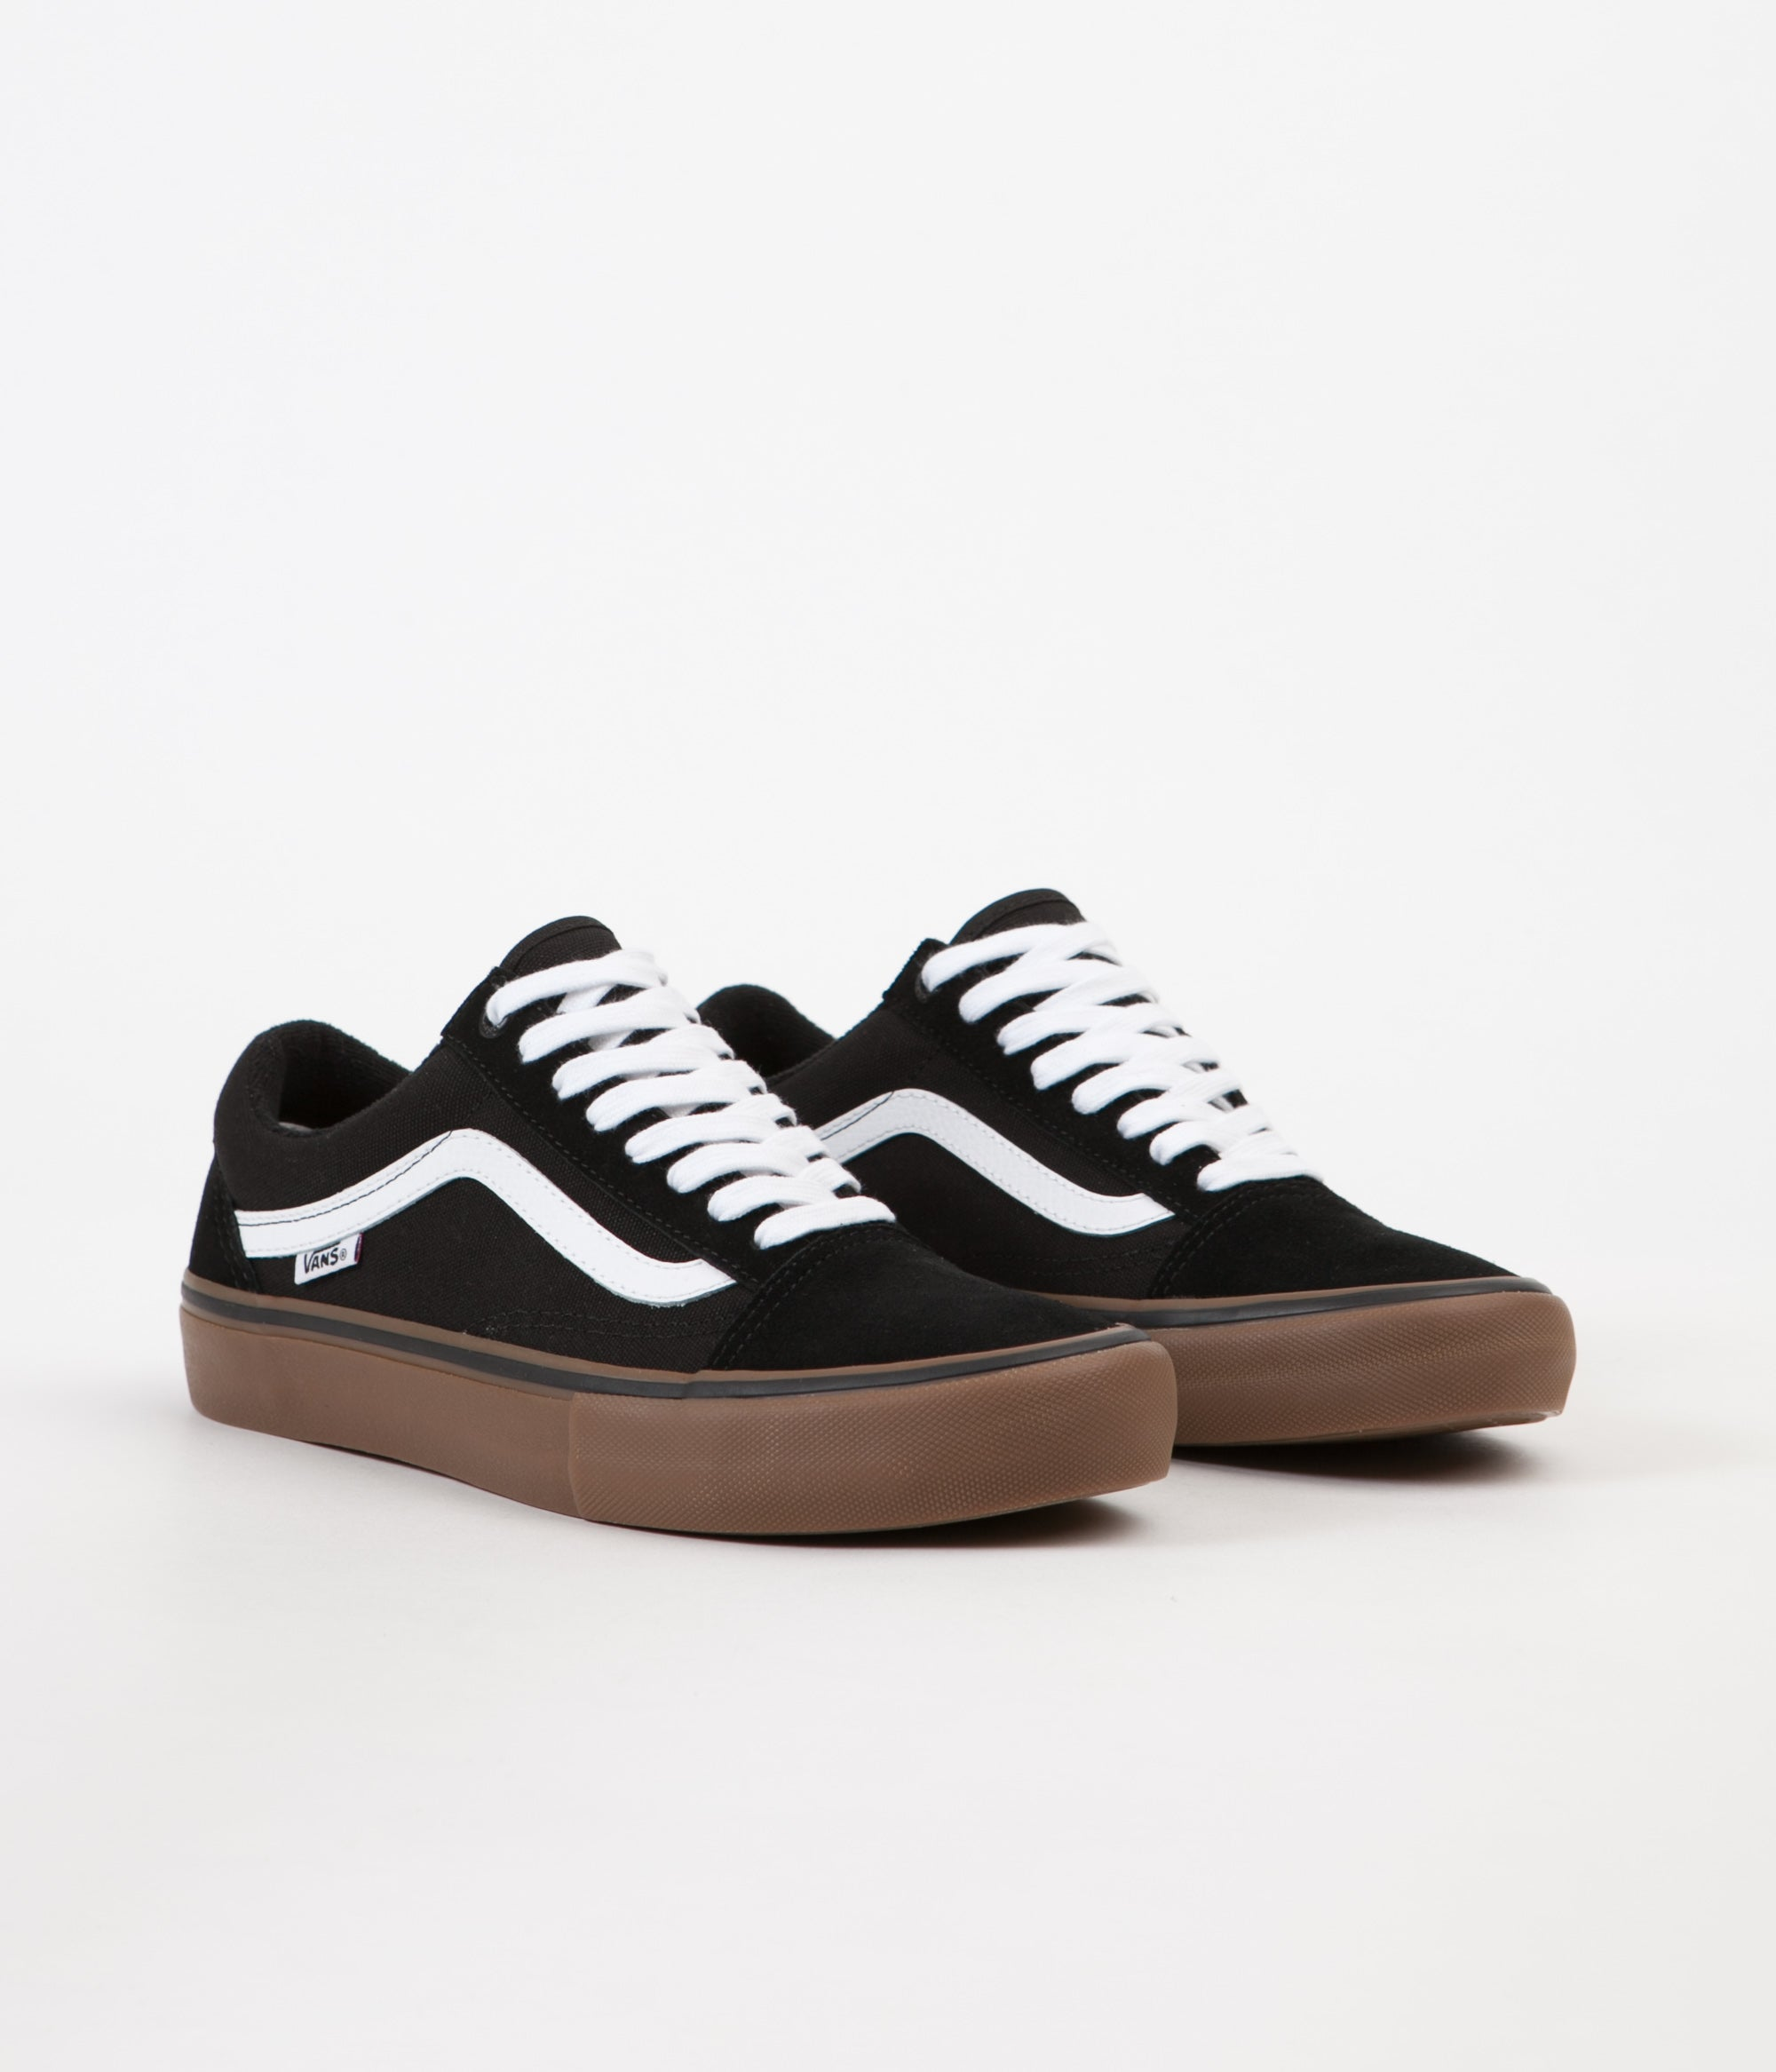 627ddd02 Vans Old Skool Pro Shoes - Black / White / Medium Gum | Flatspot